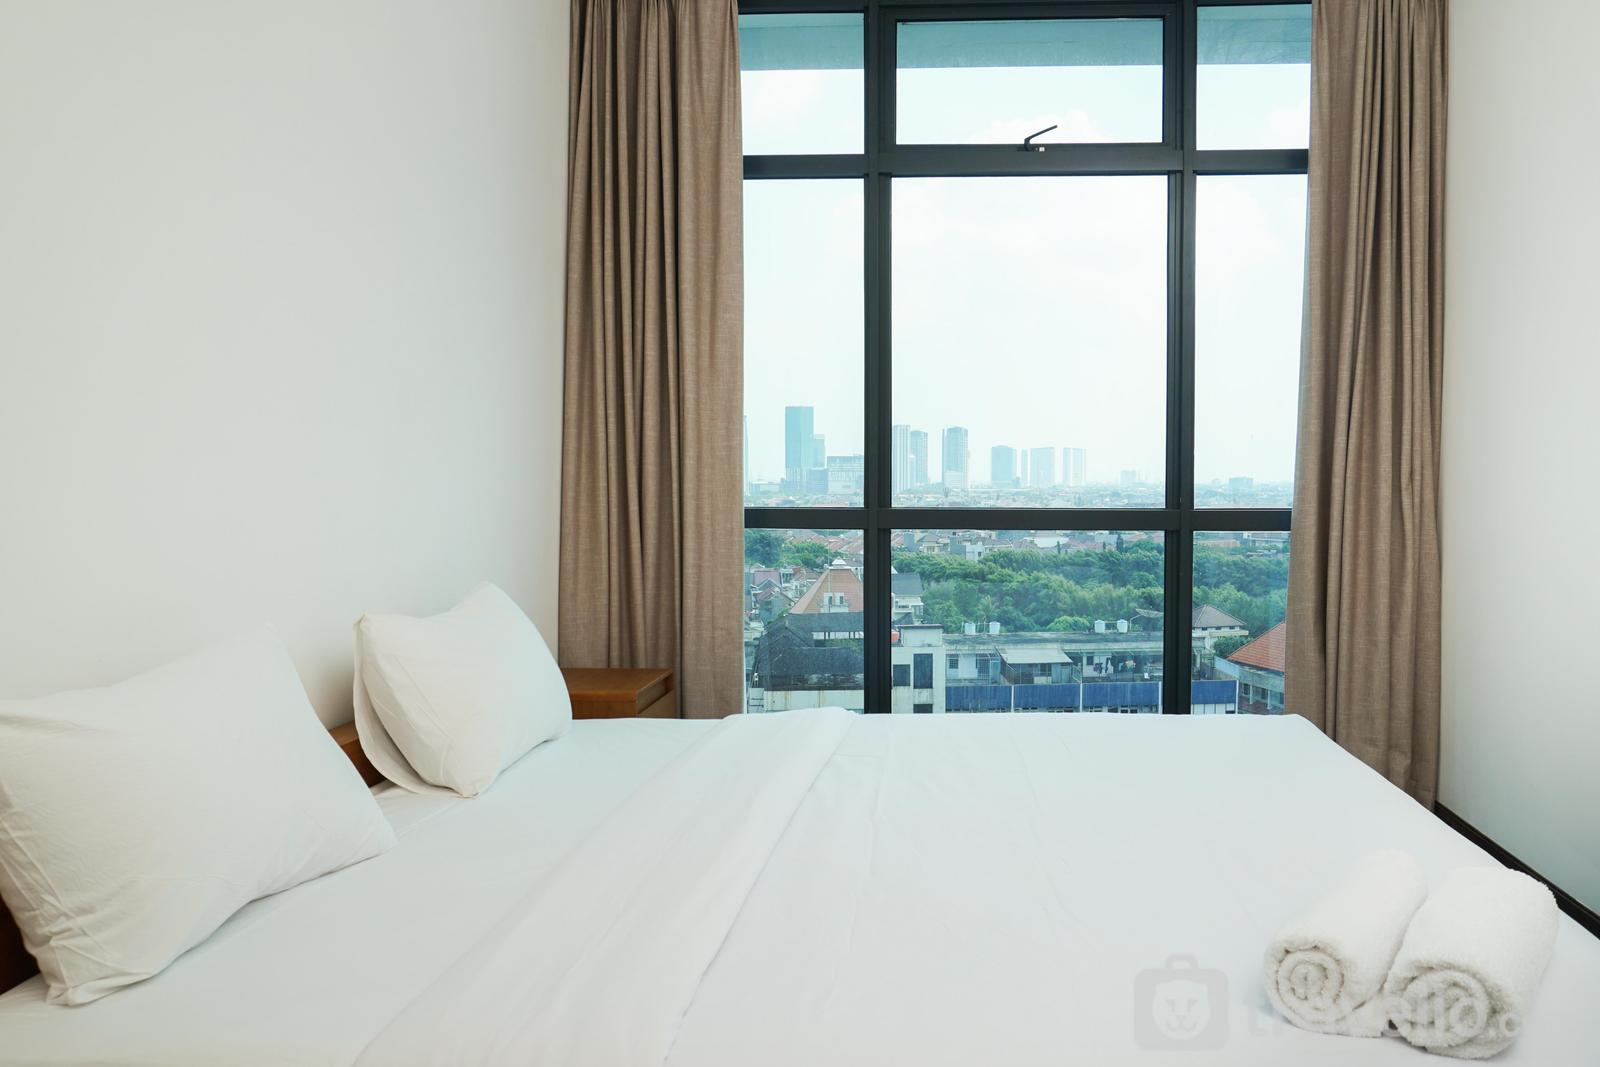 Veranda Residence Puri - Exclusive 1BR Veranda Residence @ Puri Apartment By Travelio